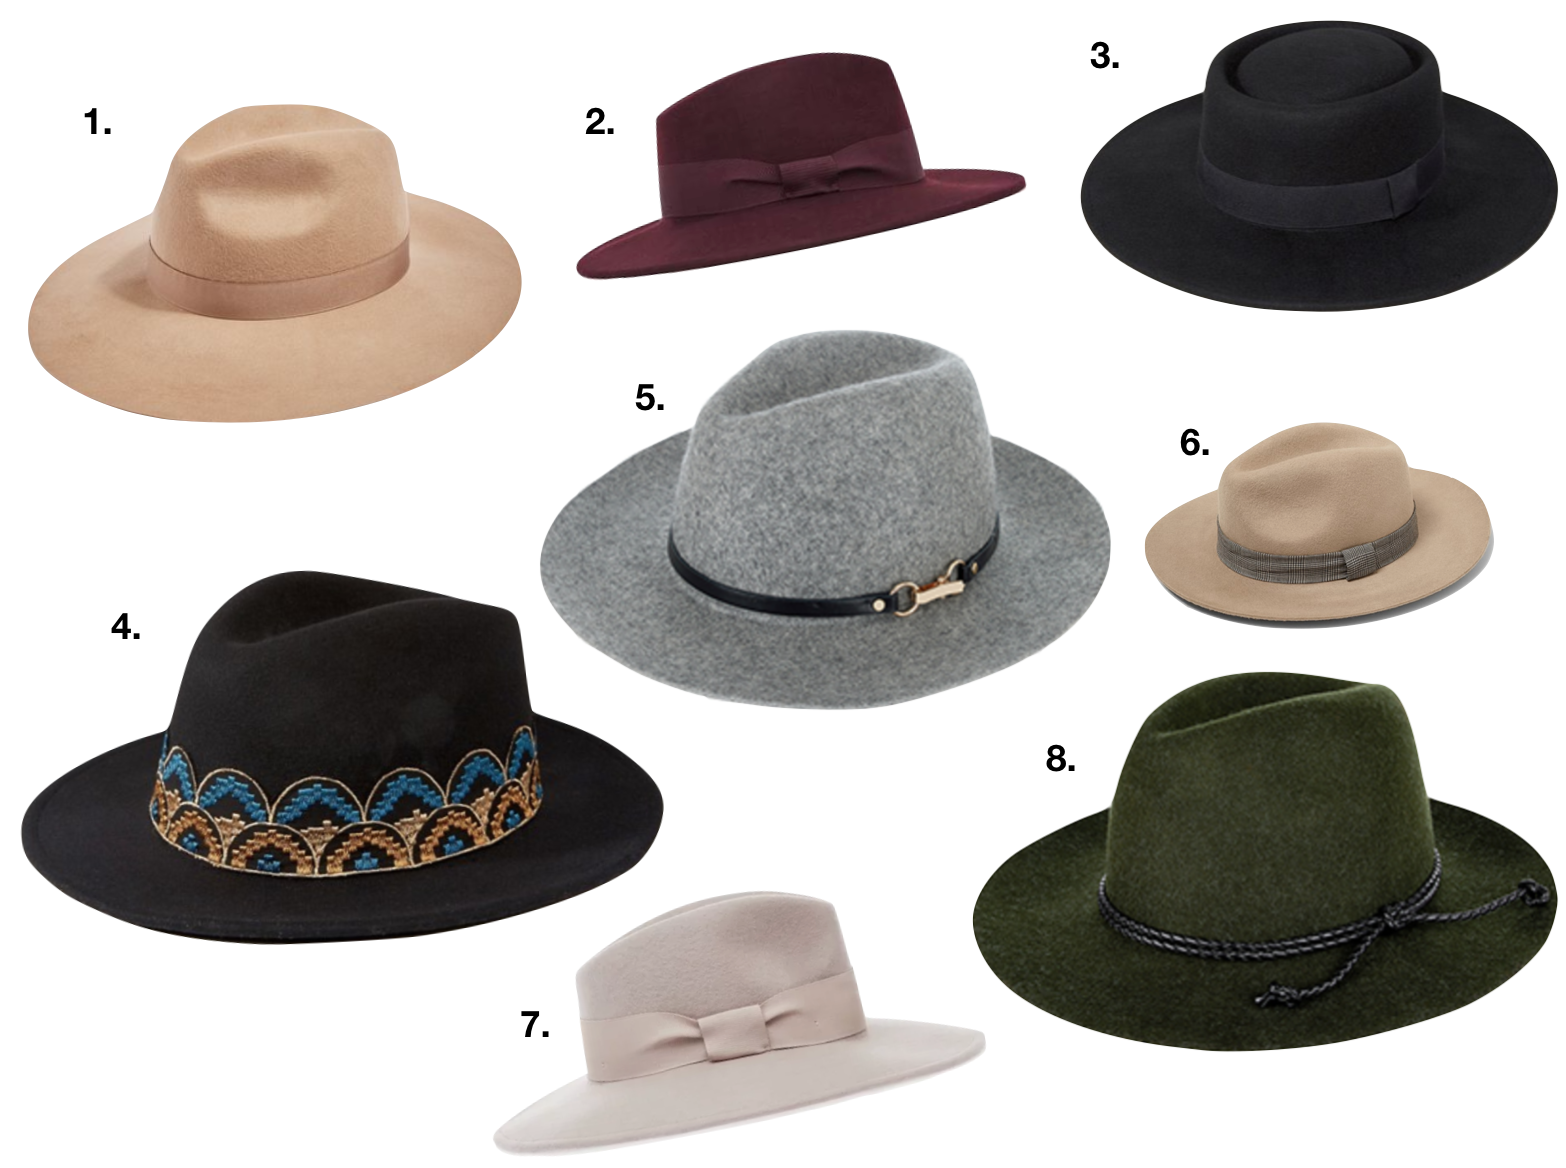 1. Camel TOPSHOP Hat  here , 2. Burgundy REISS hat with ribbon  here , 3. Plain black ASOS hat  here , 4. Black BRIXTON hat  here , 5. Grey MONSOON hat  here , 6. Camel ZARA hat  here , 7. Blush pink REISS hat with ribbon hat  here , 8. Bottle green MONSOON hat  here .